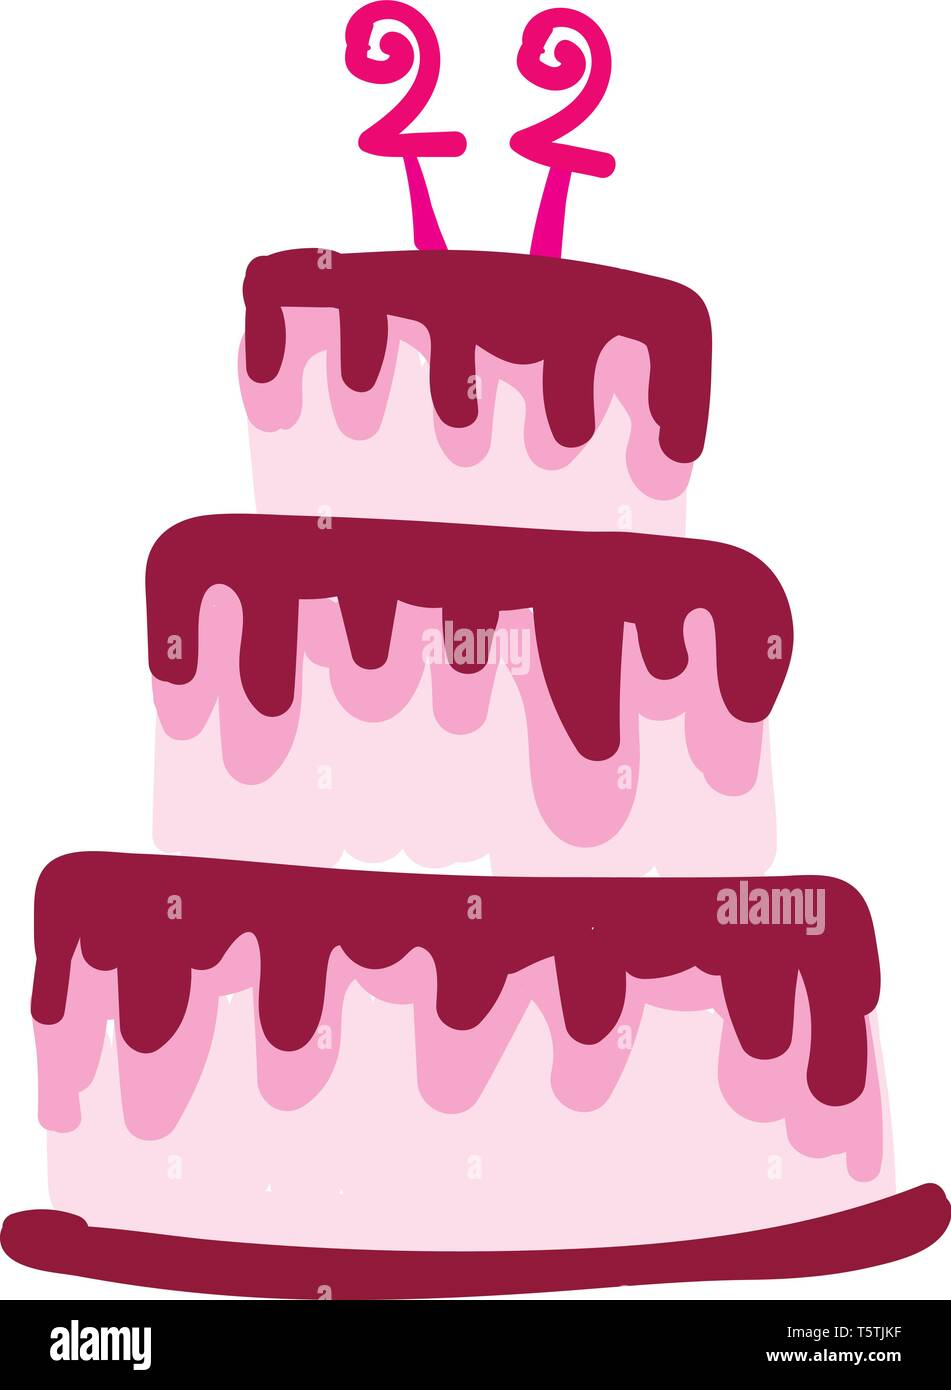 Groovy 22Nd Birthday Cake For The Lady Vector Or Color Illustration Stock Personalised Birthday Cards Sponlily Jamesorg